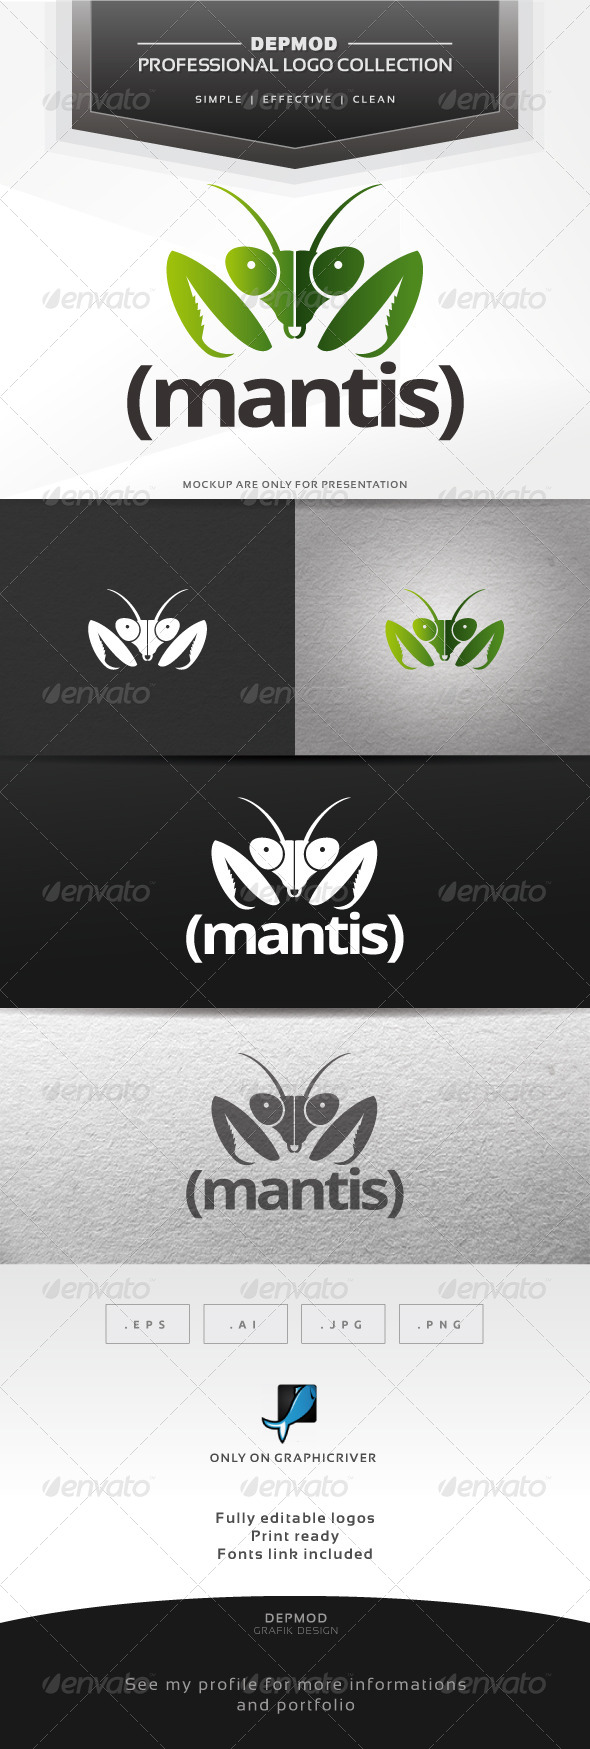 GraphicRiver Mantis Logo 6447022